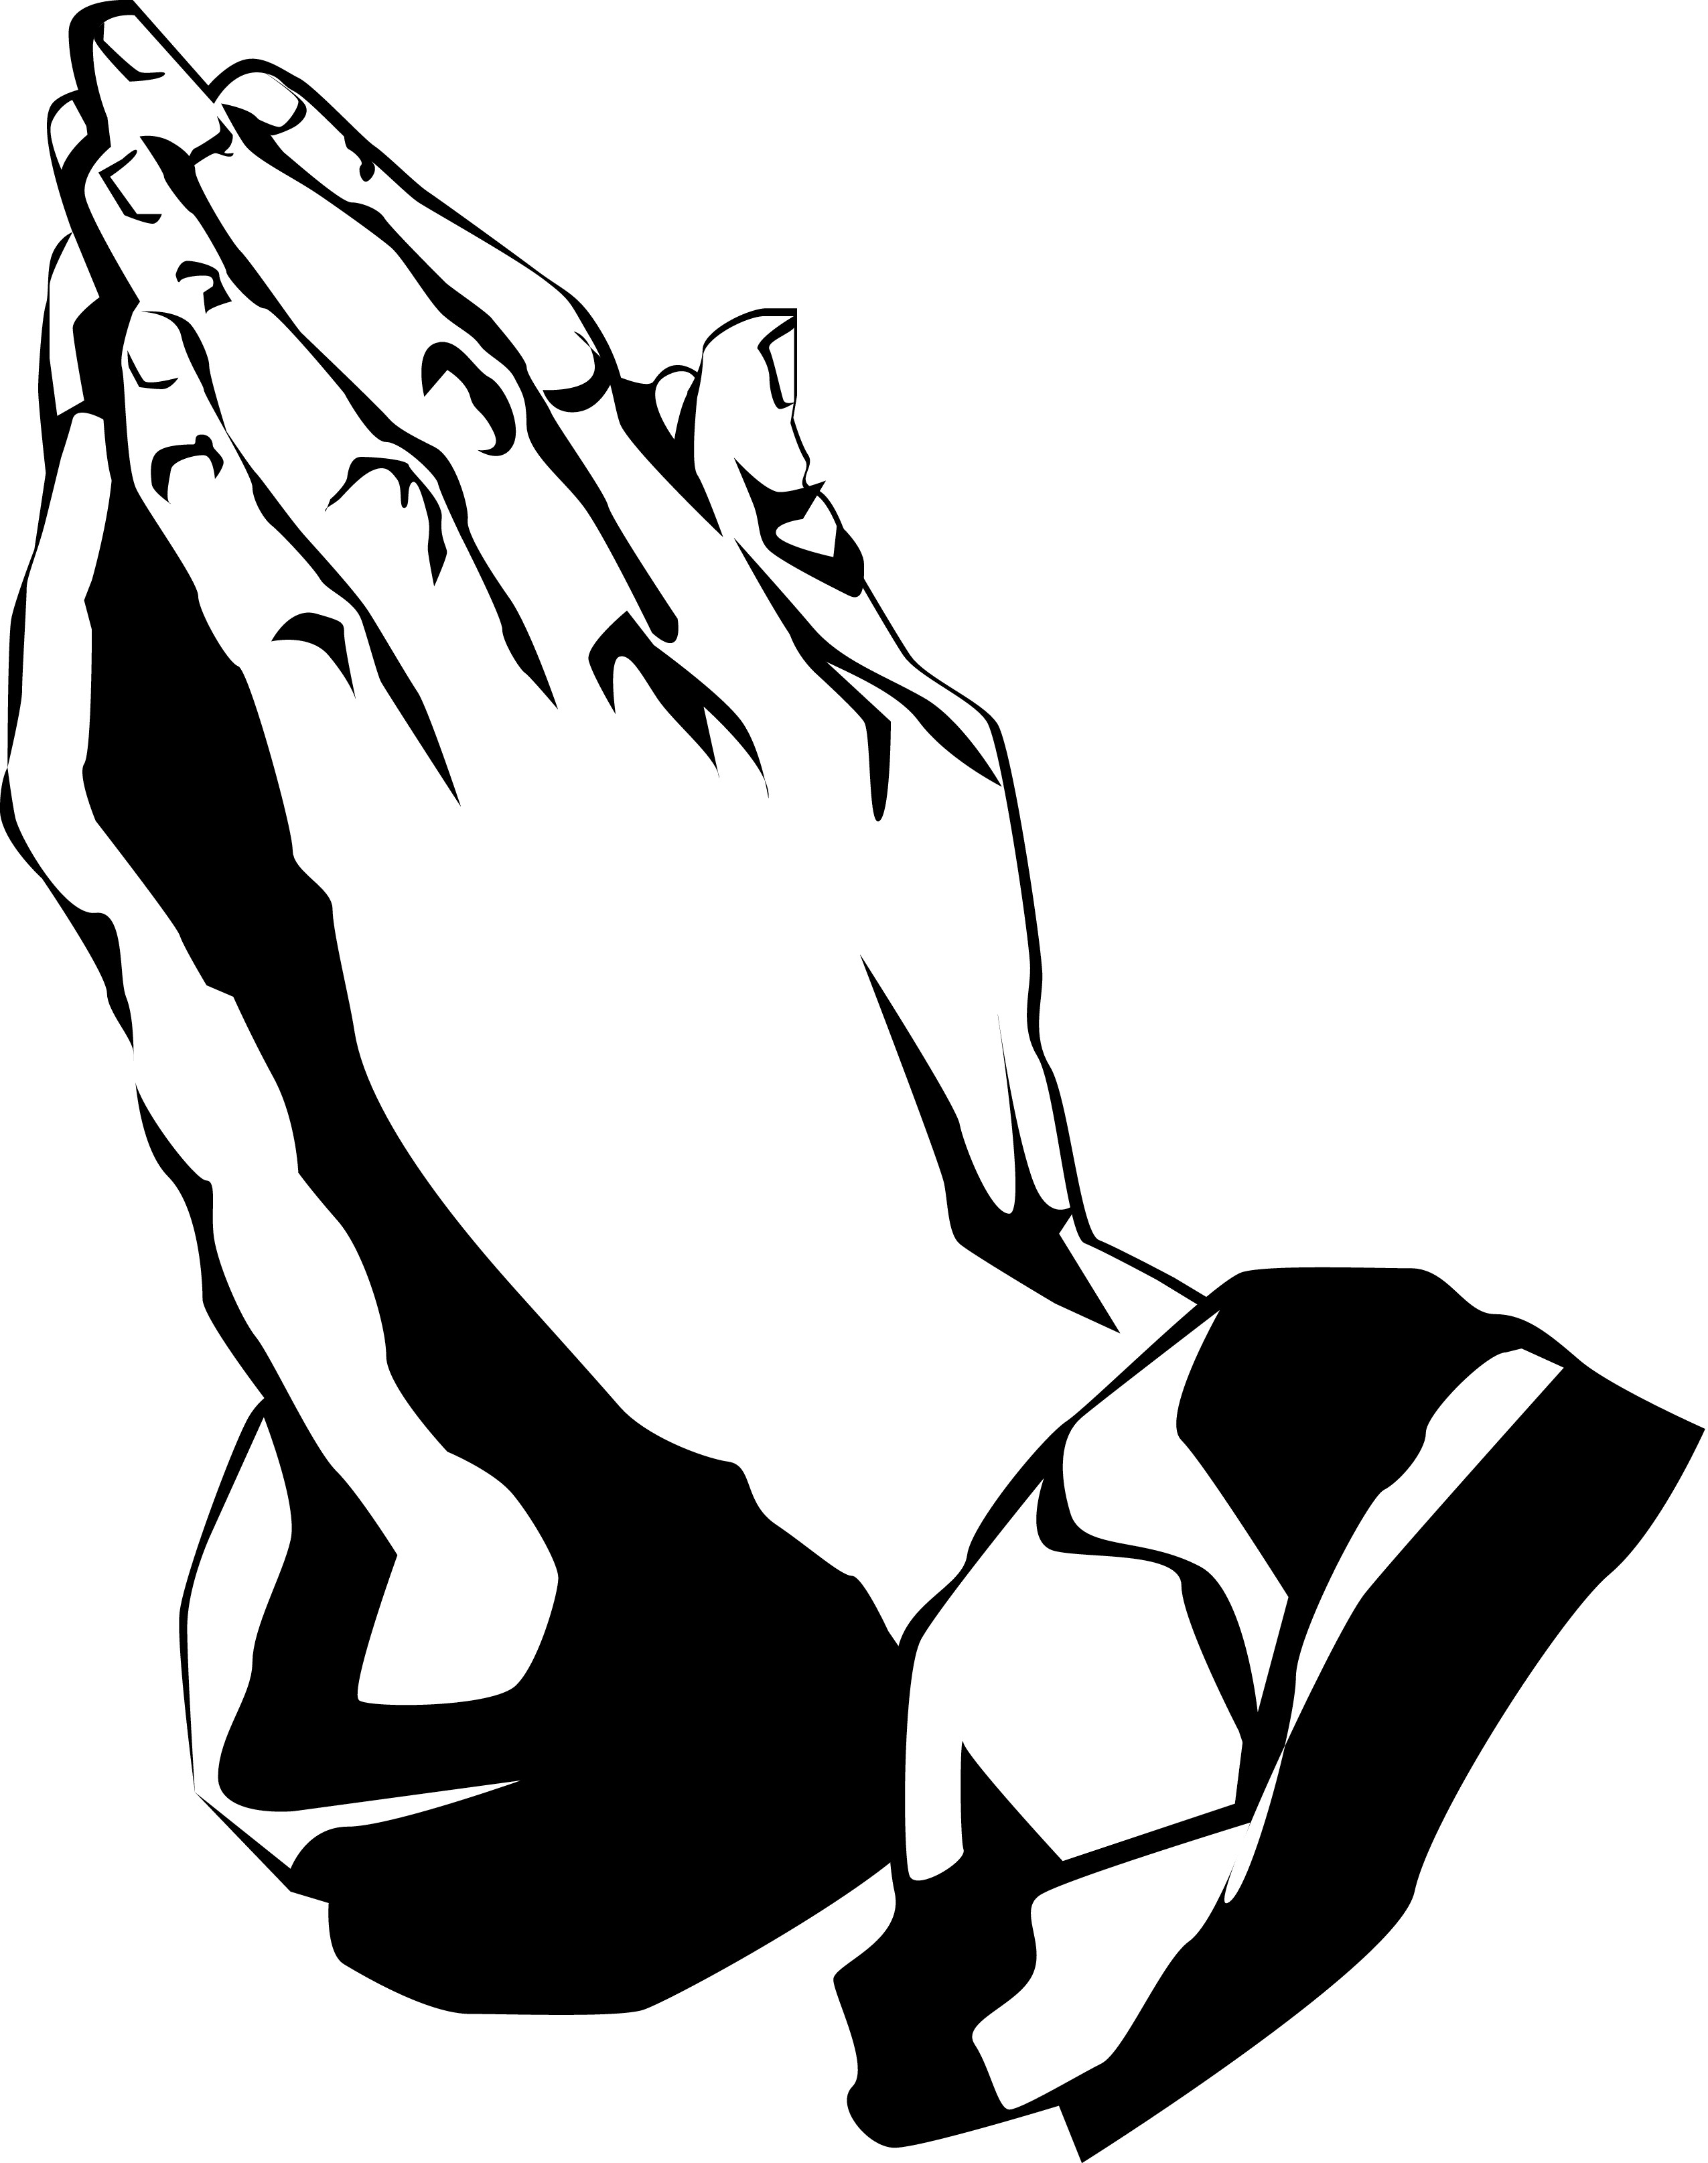 2550x3229 Collection Of Free Clipart Praying Hands Silhouette Download